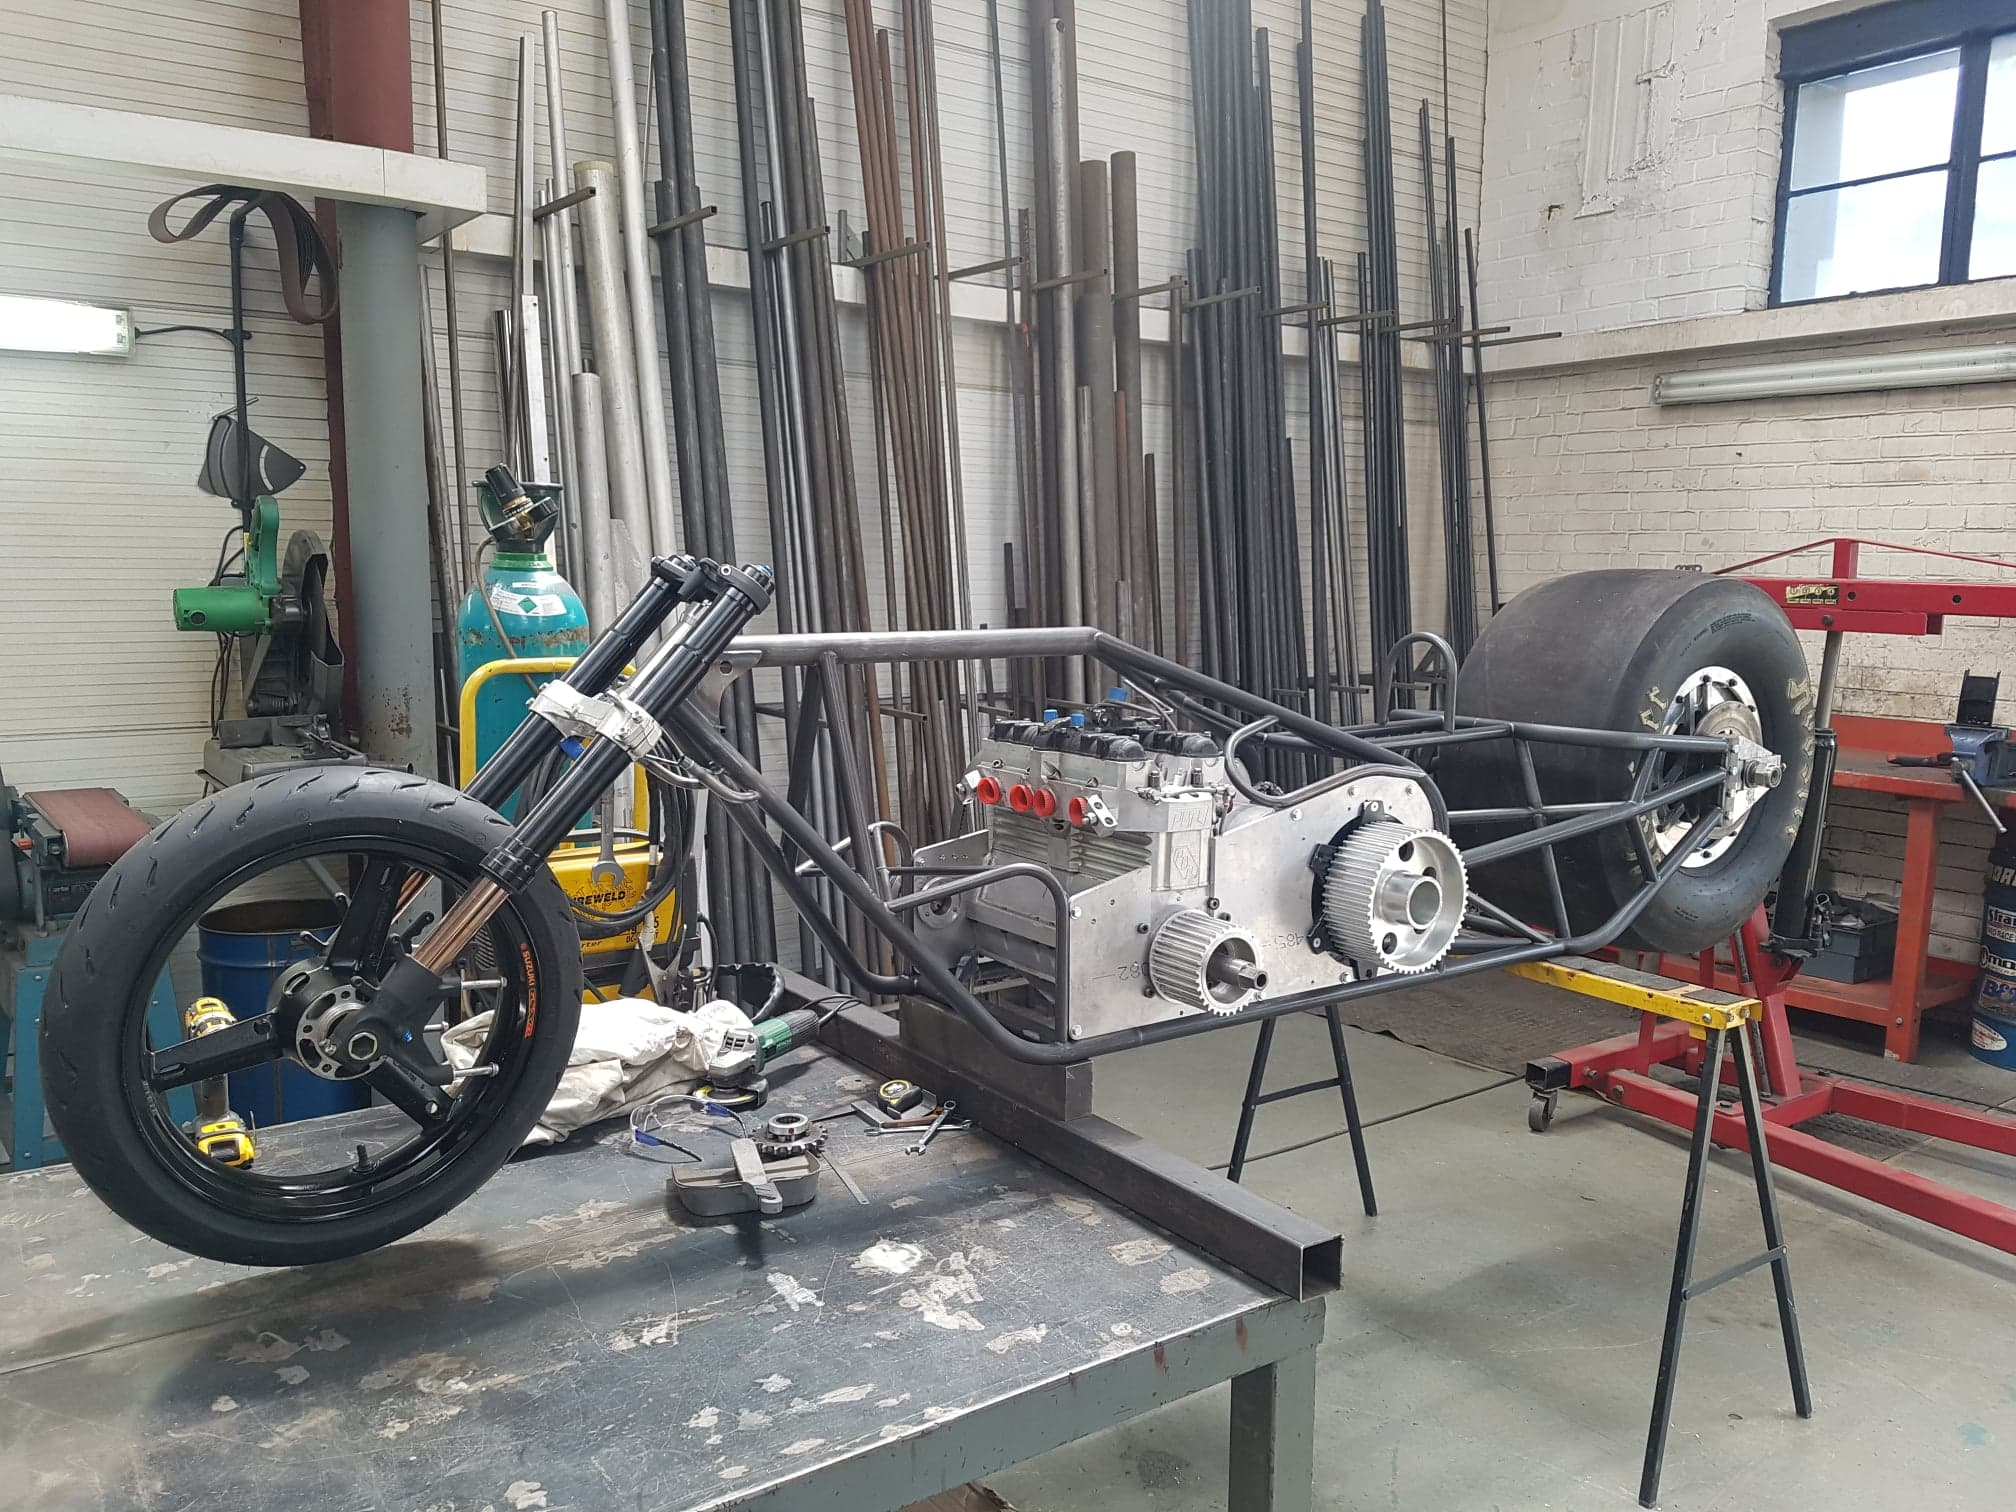 Top Fuel Bike Update – Moving Along Nicely